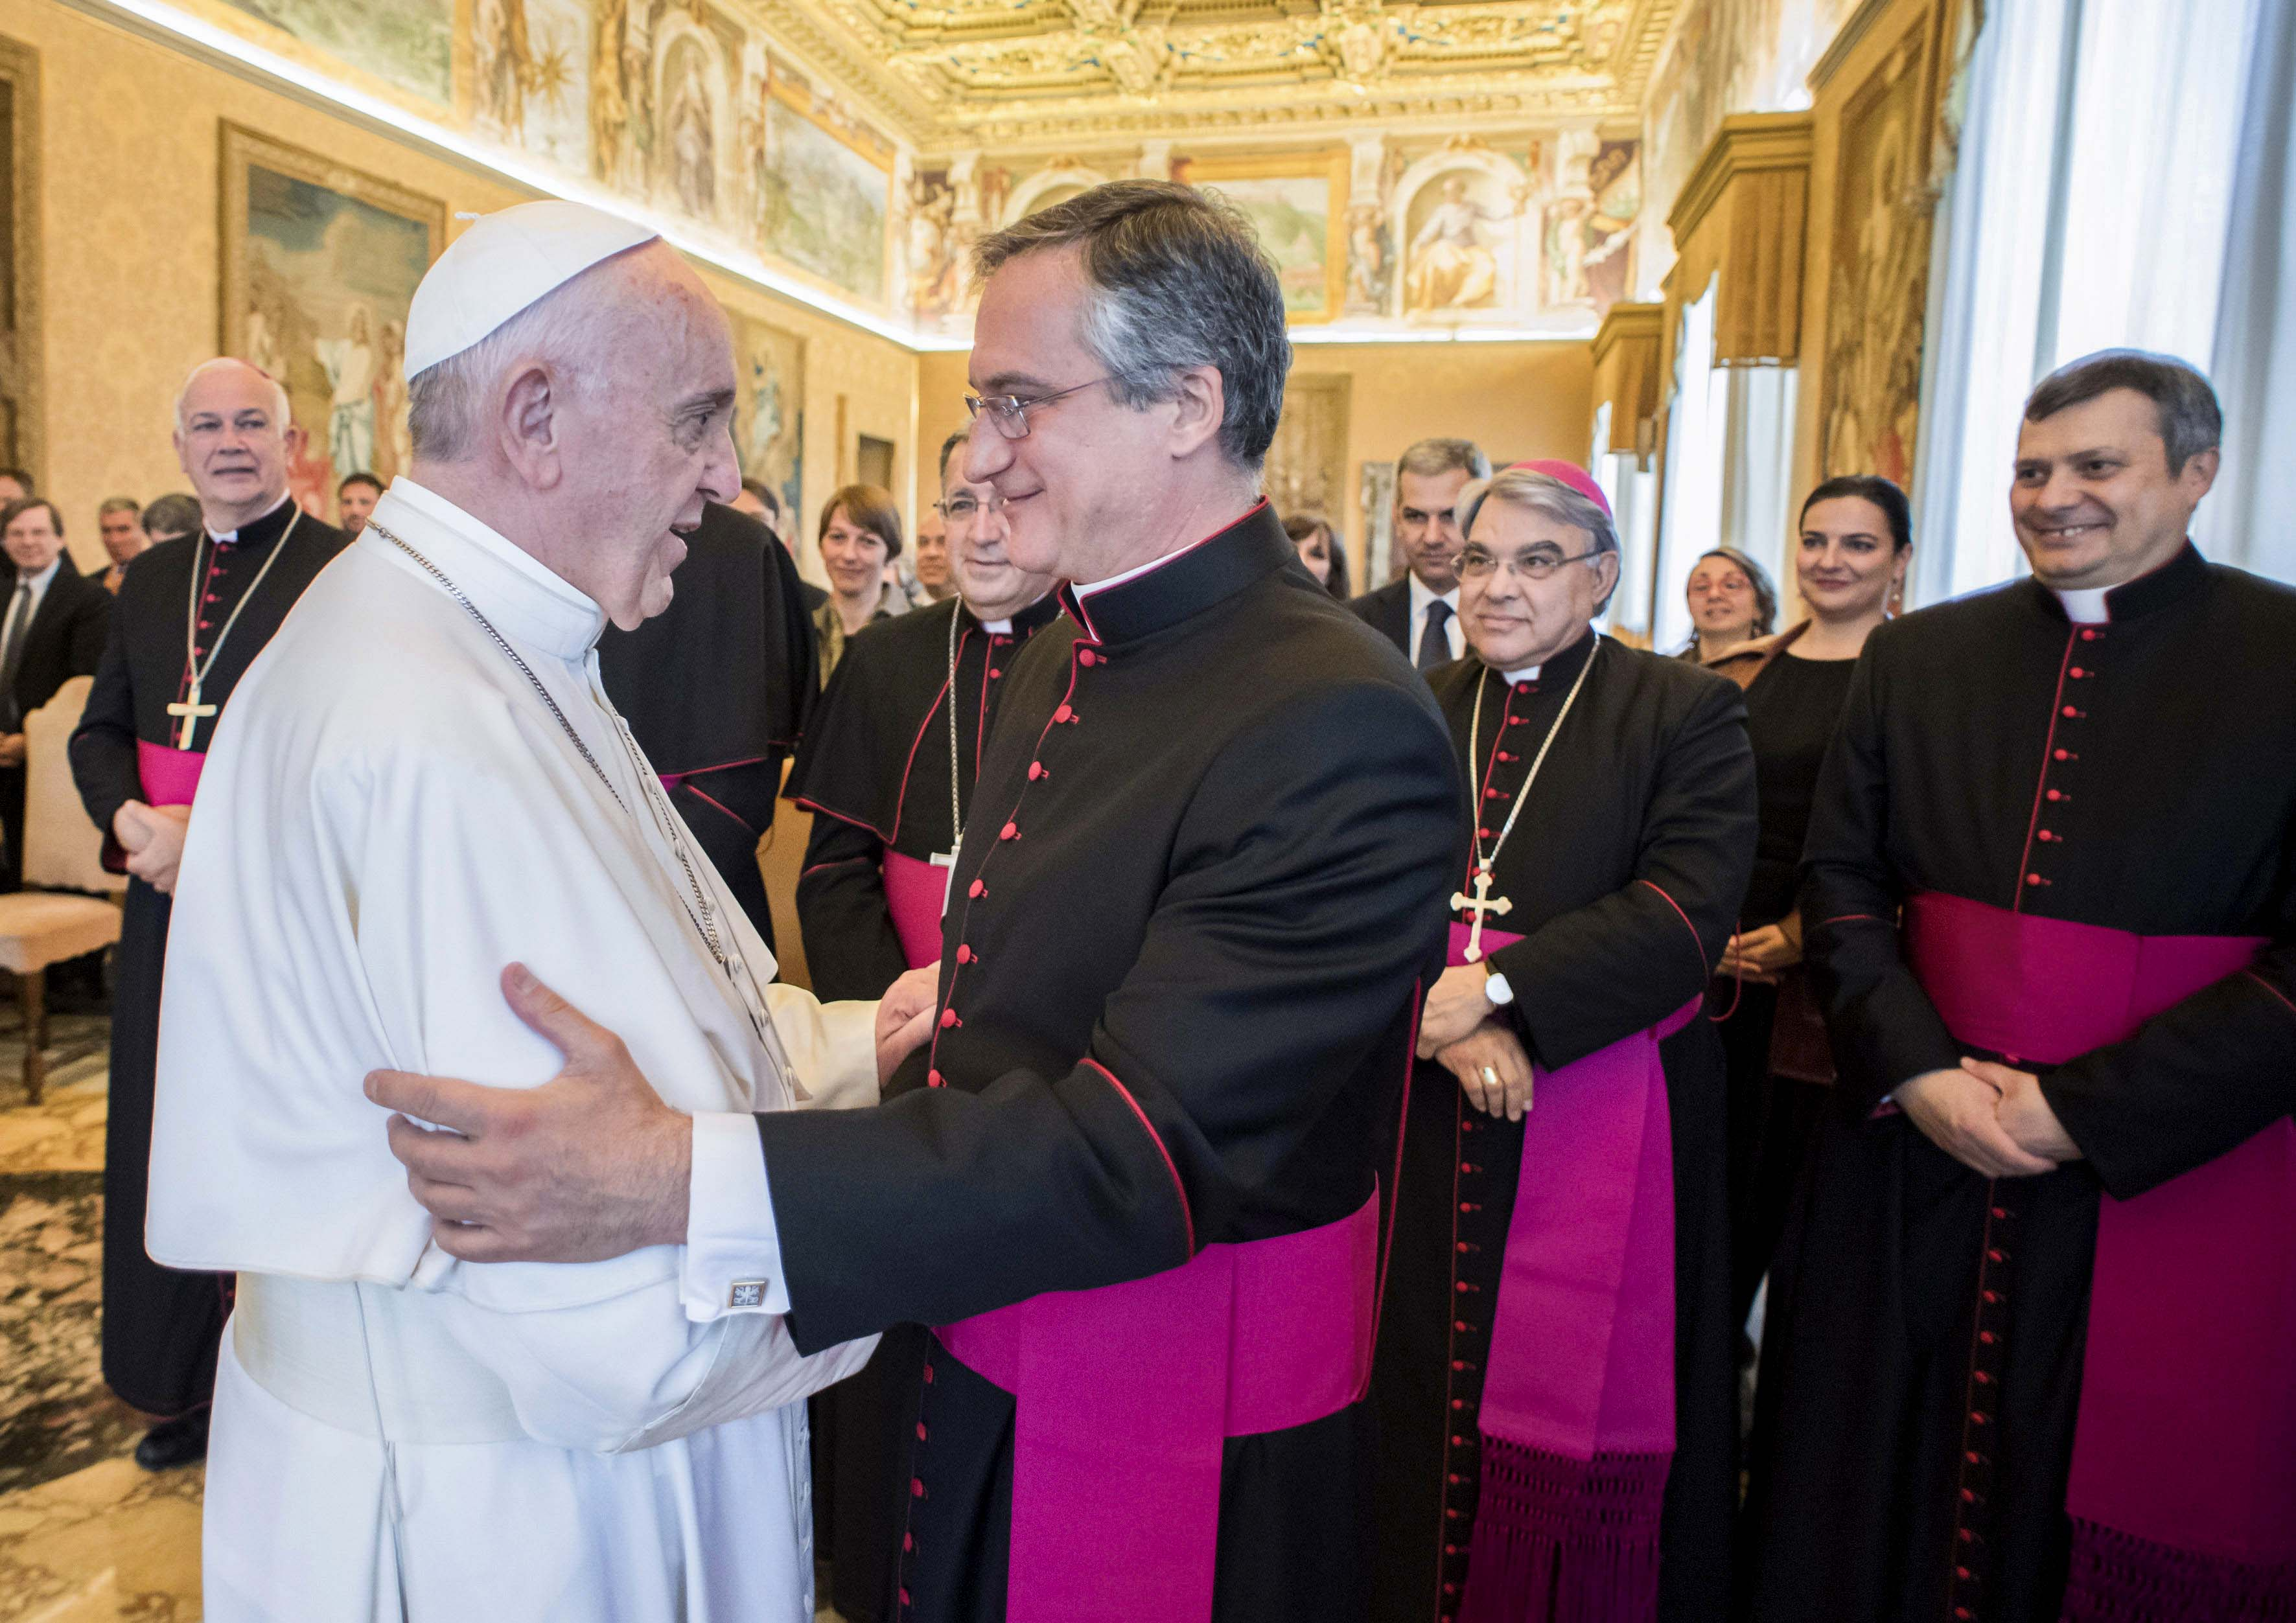 Pope Francis greets Msgr Dario Vigano, Director of the Vatican Secretariat for Communications, during a meeting with members of the Secretariat at the Vatican May 4. Addressing the group responsible for reforming Vatican Communications, the Holy Father said that courageous teamwork is needed to best respond to new challenges. Photo: CNS/L'Osservatore Romano.